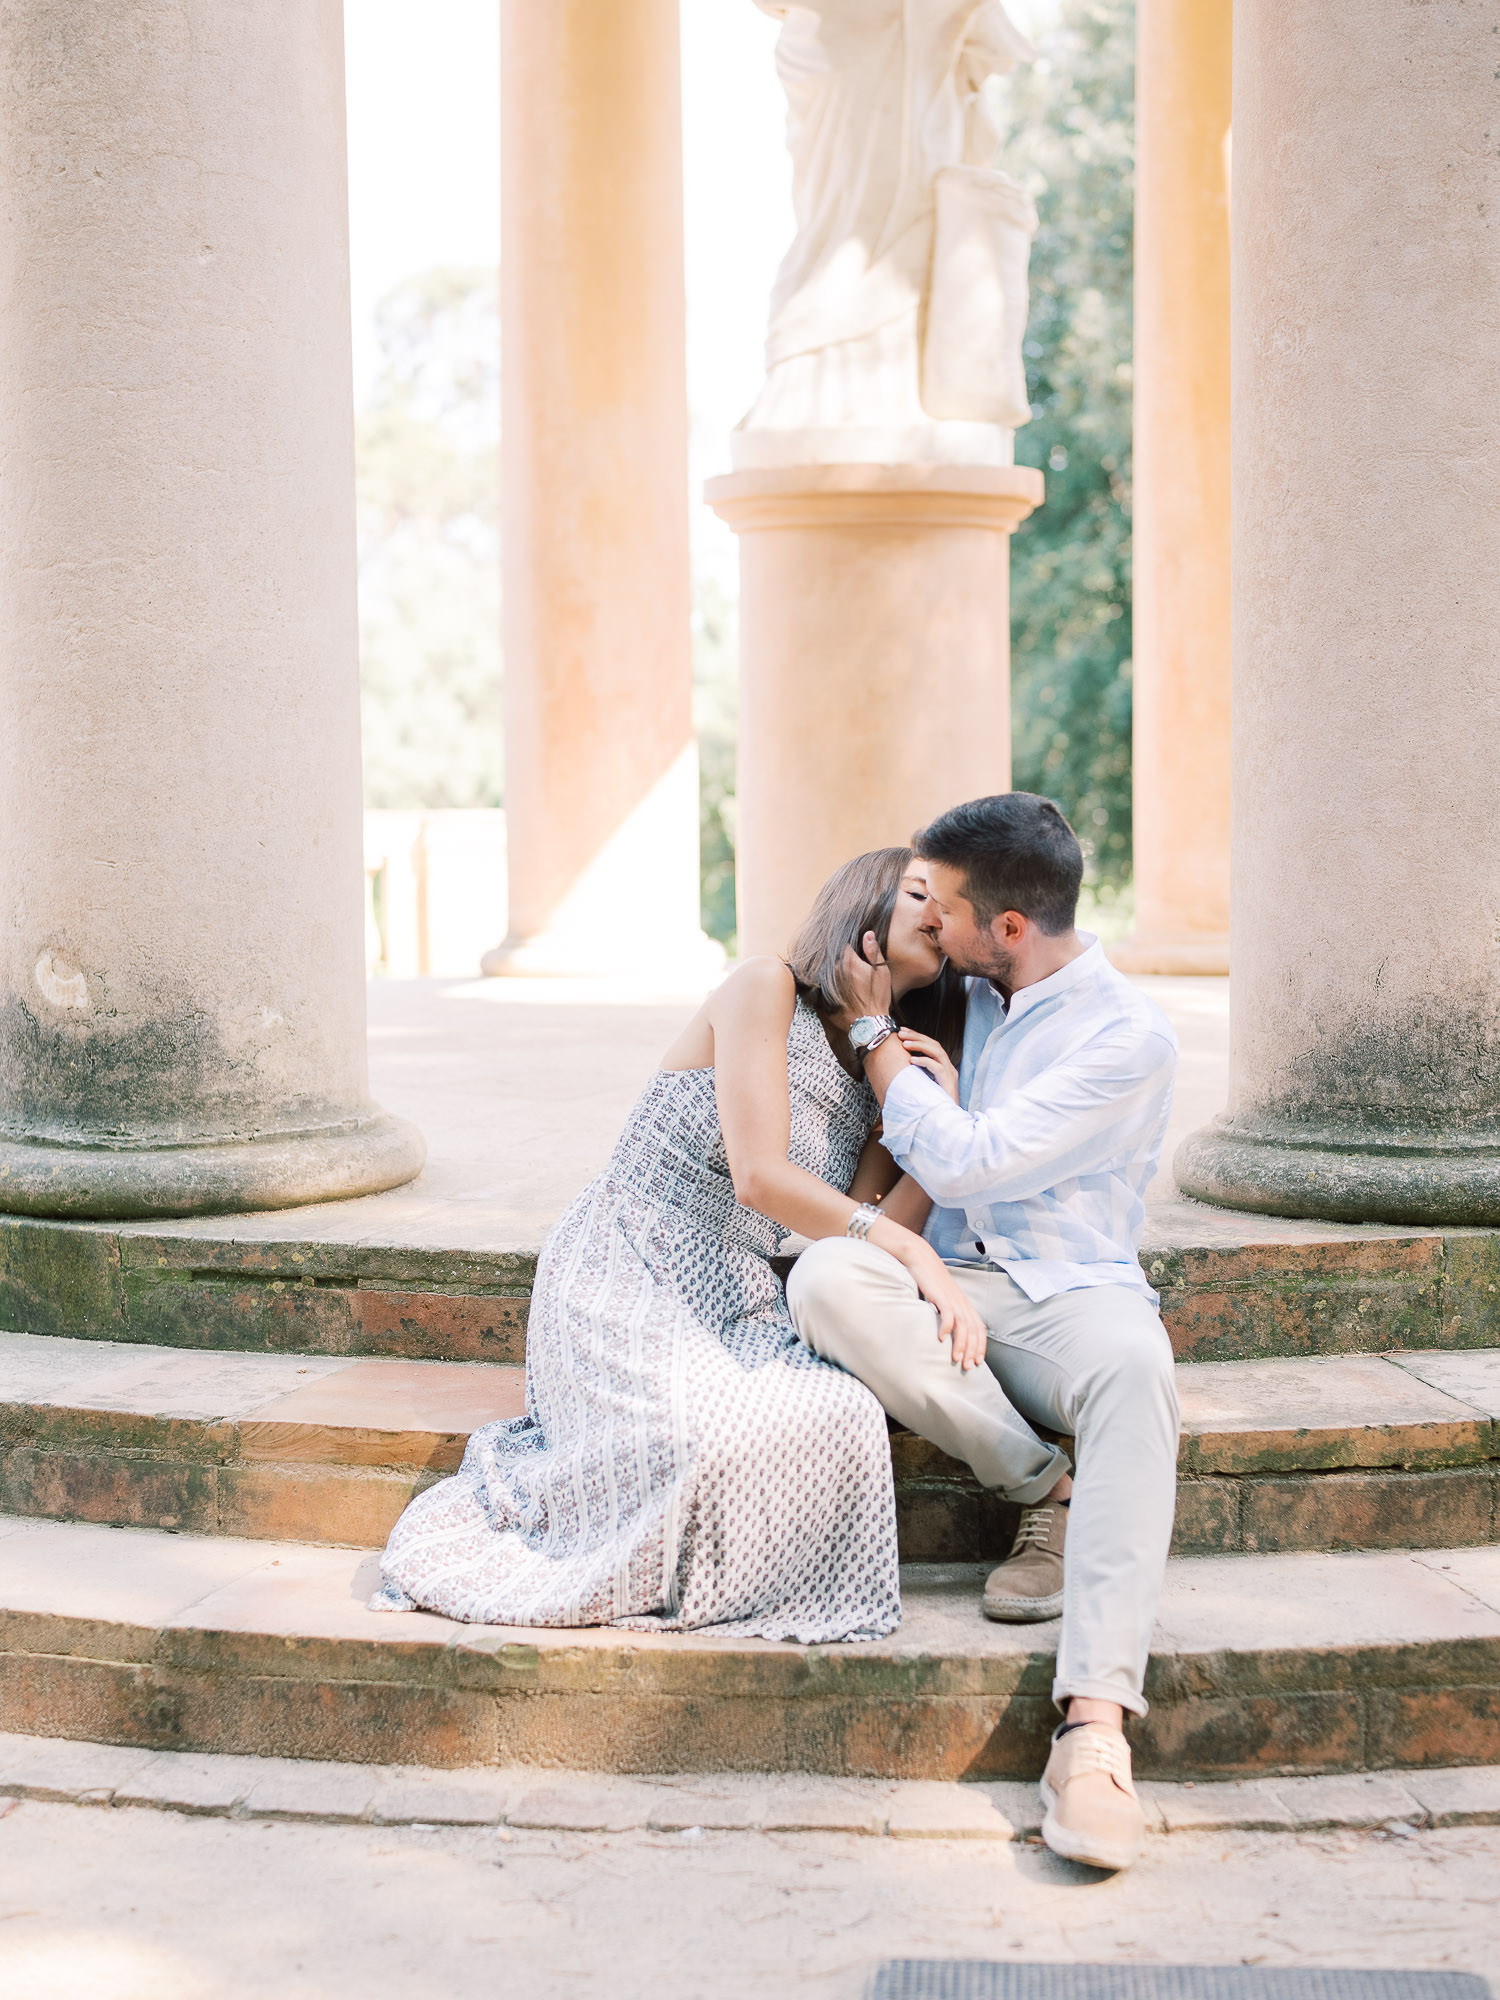 Barcelona Spain Engagement Photographer